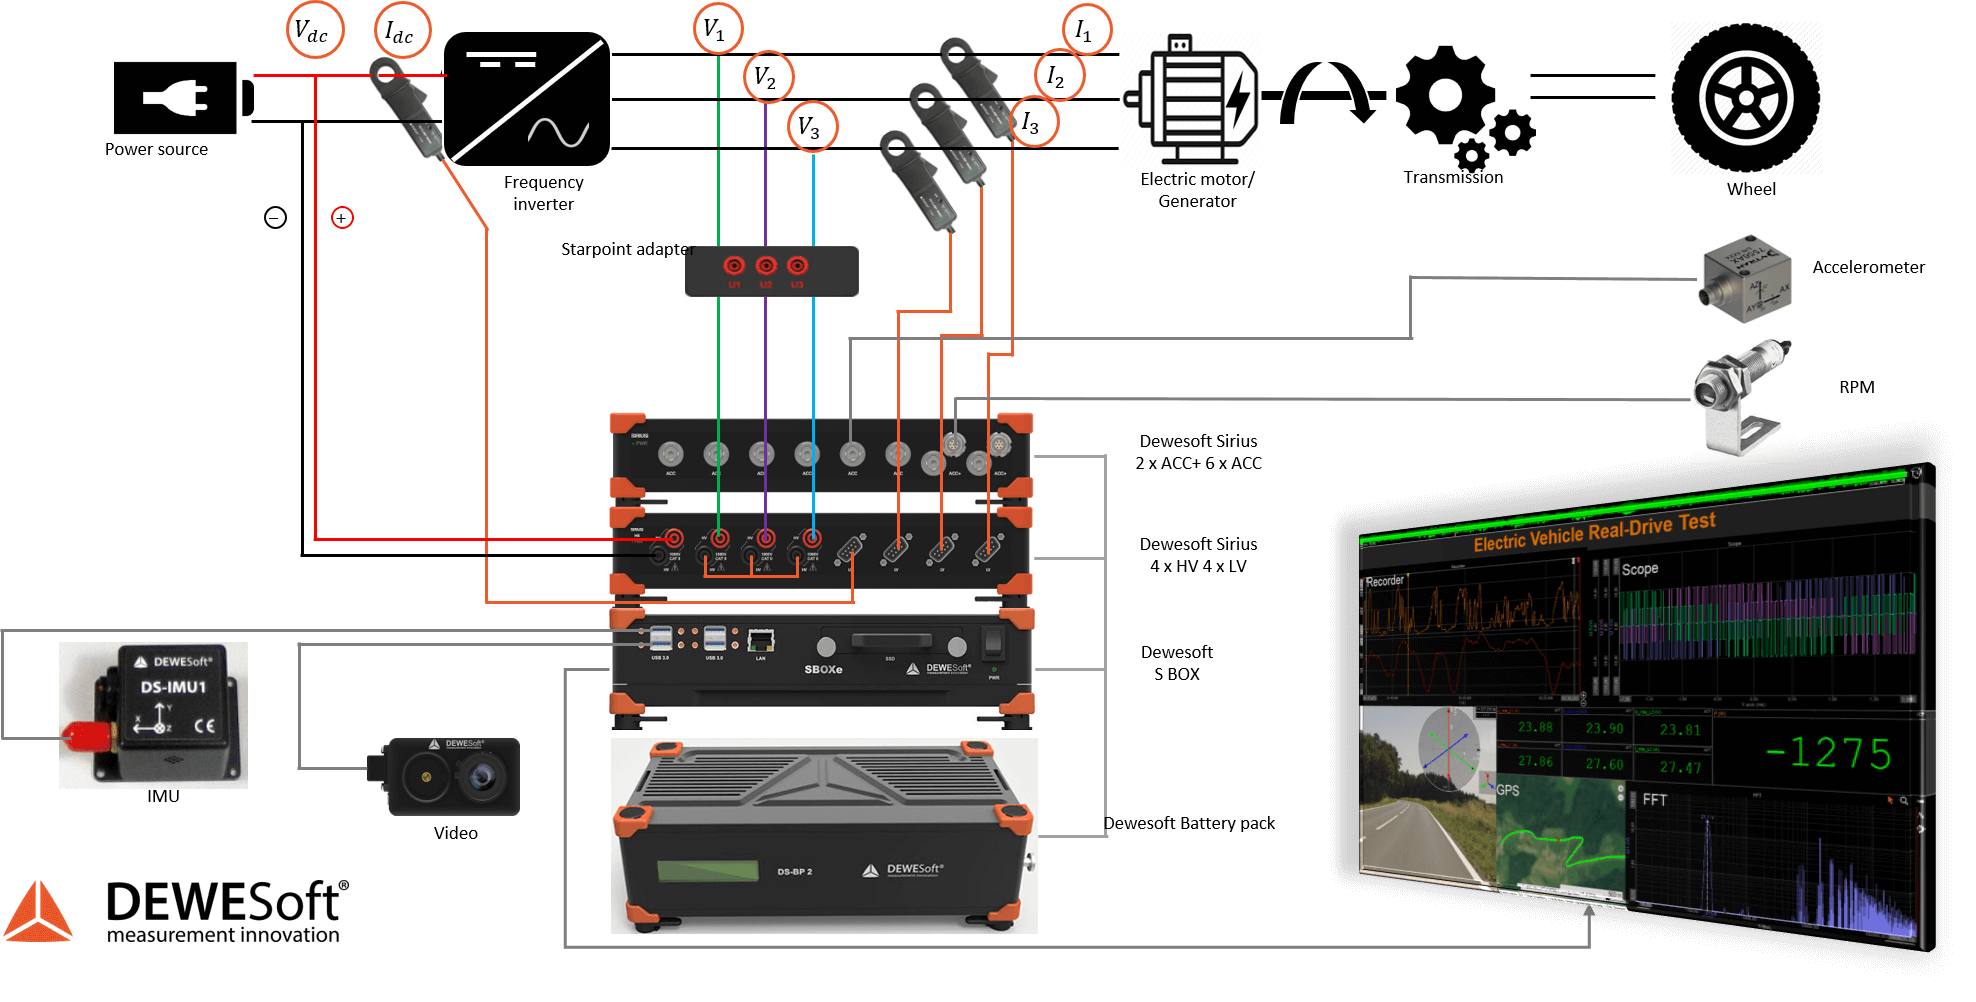 Real drive test data acquisition setup schematic